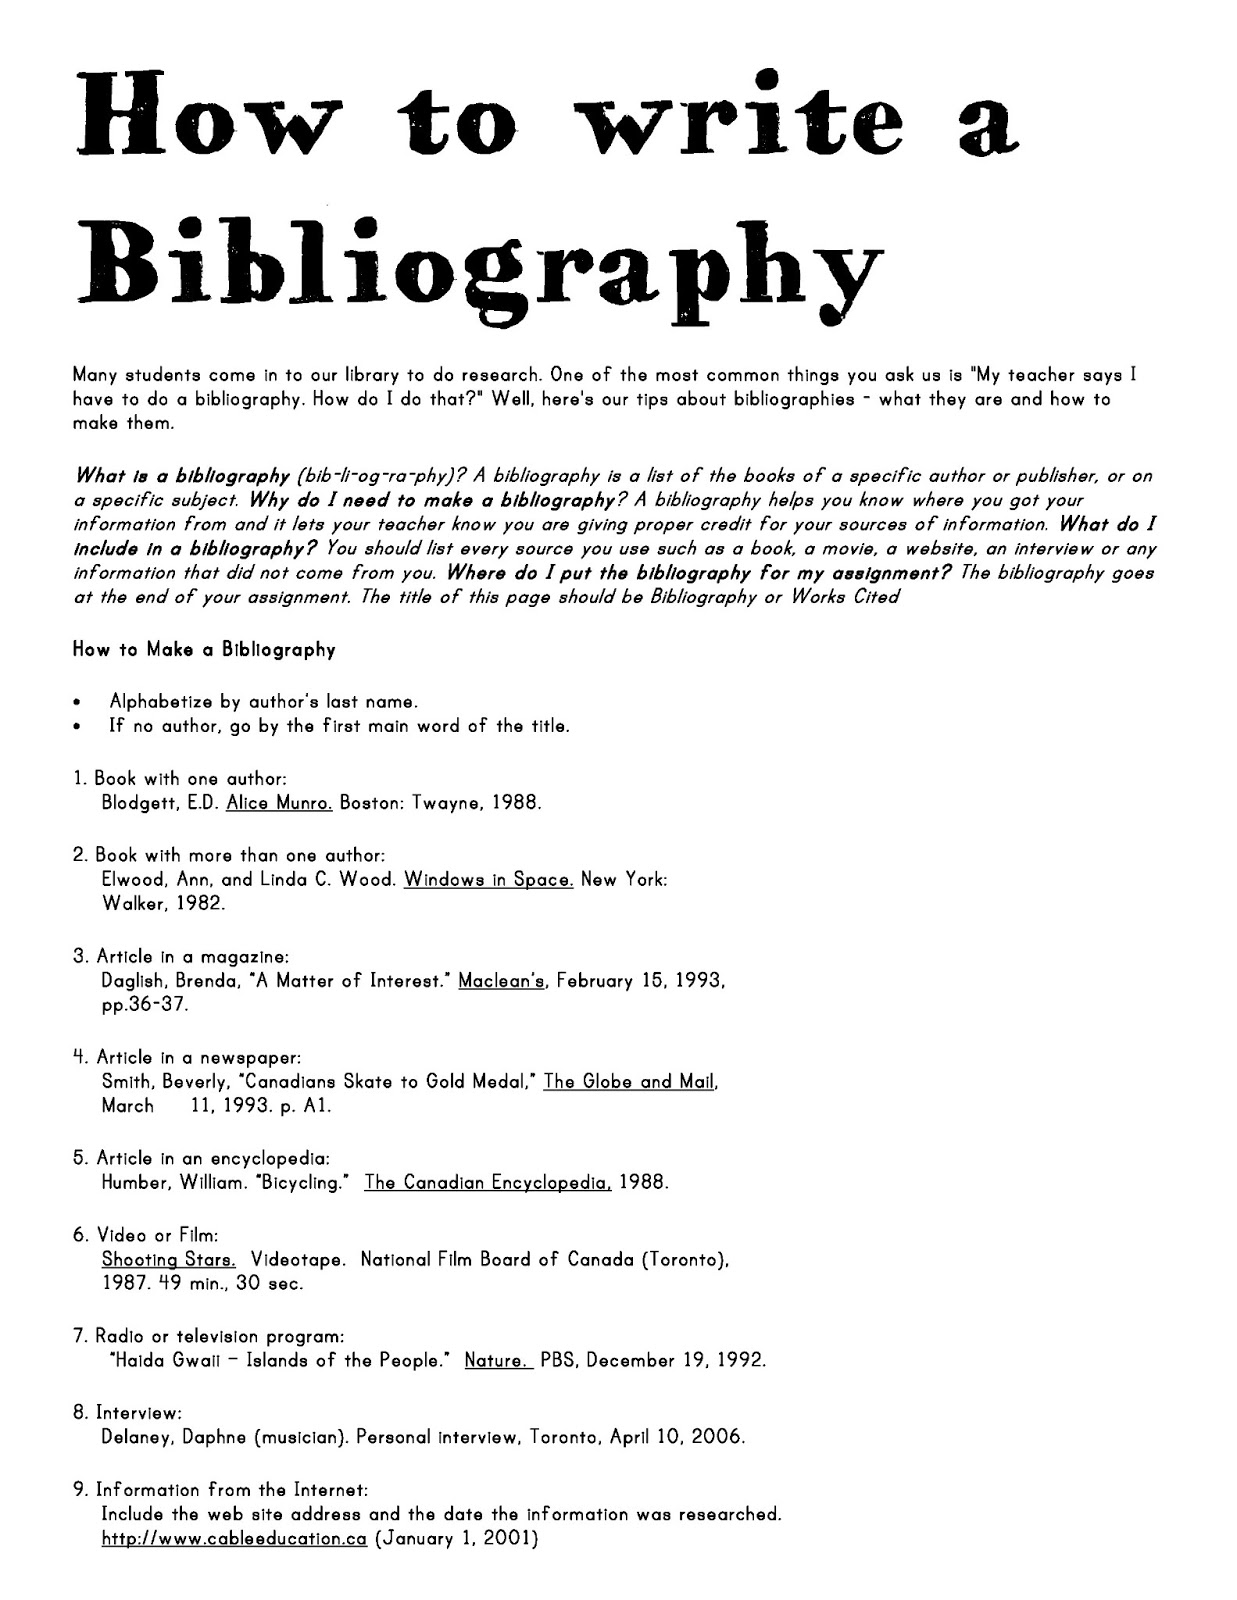 Bibliography of an essay